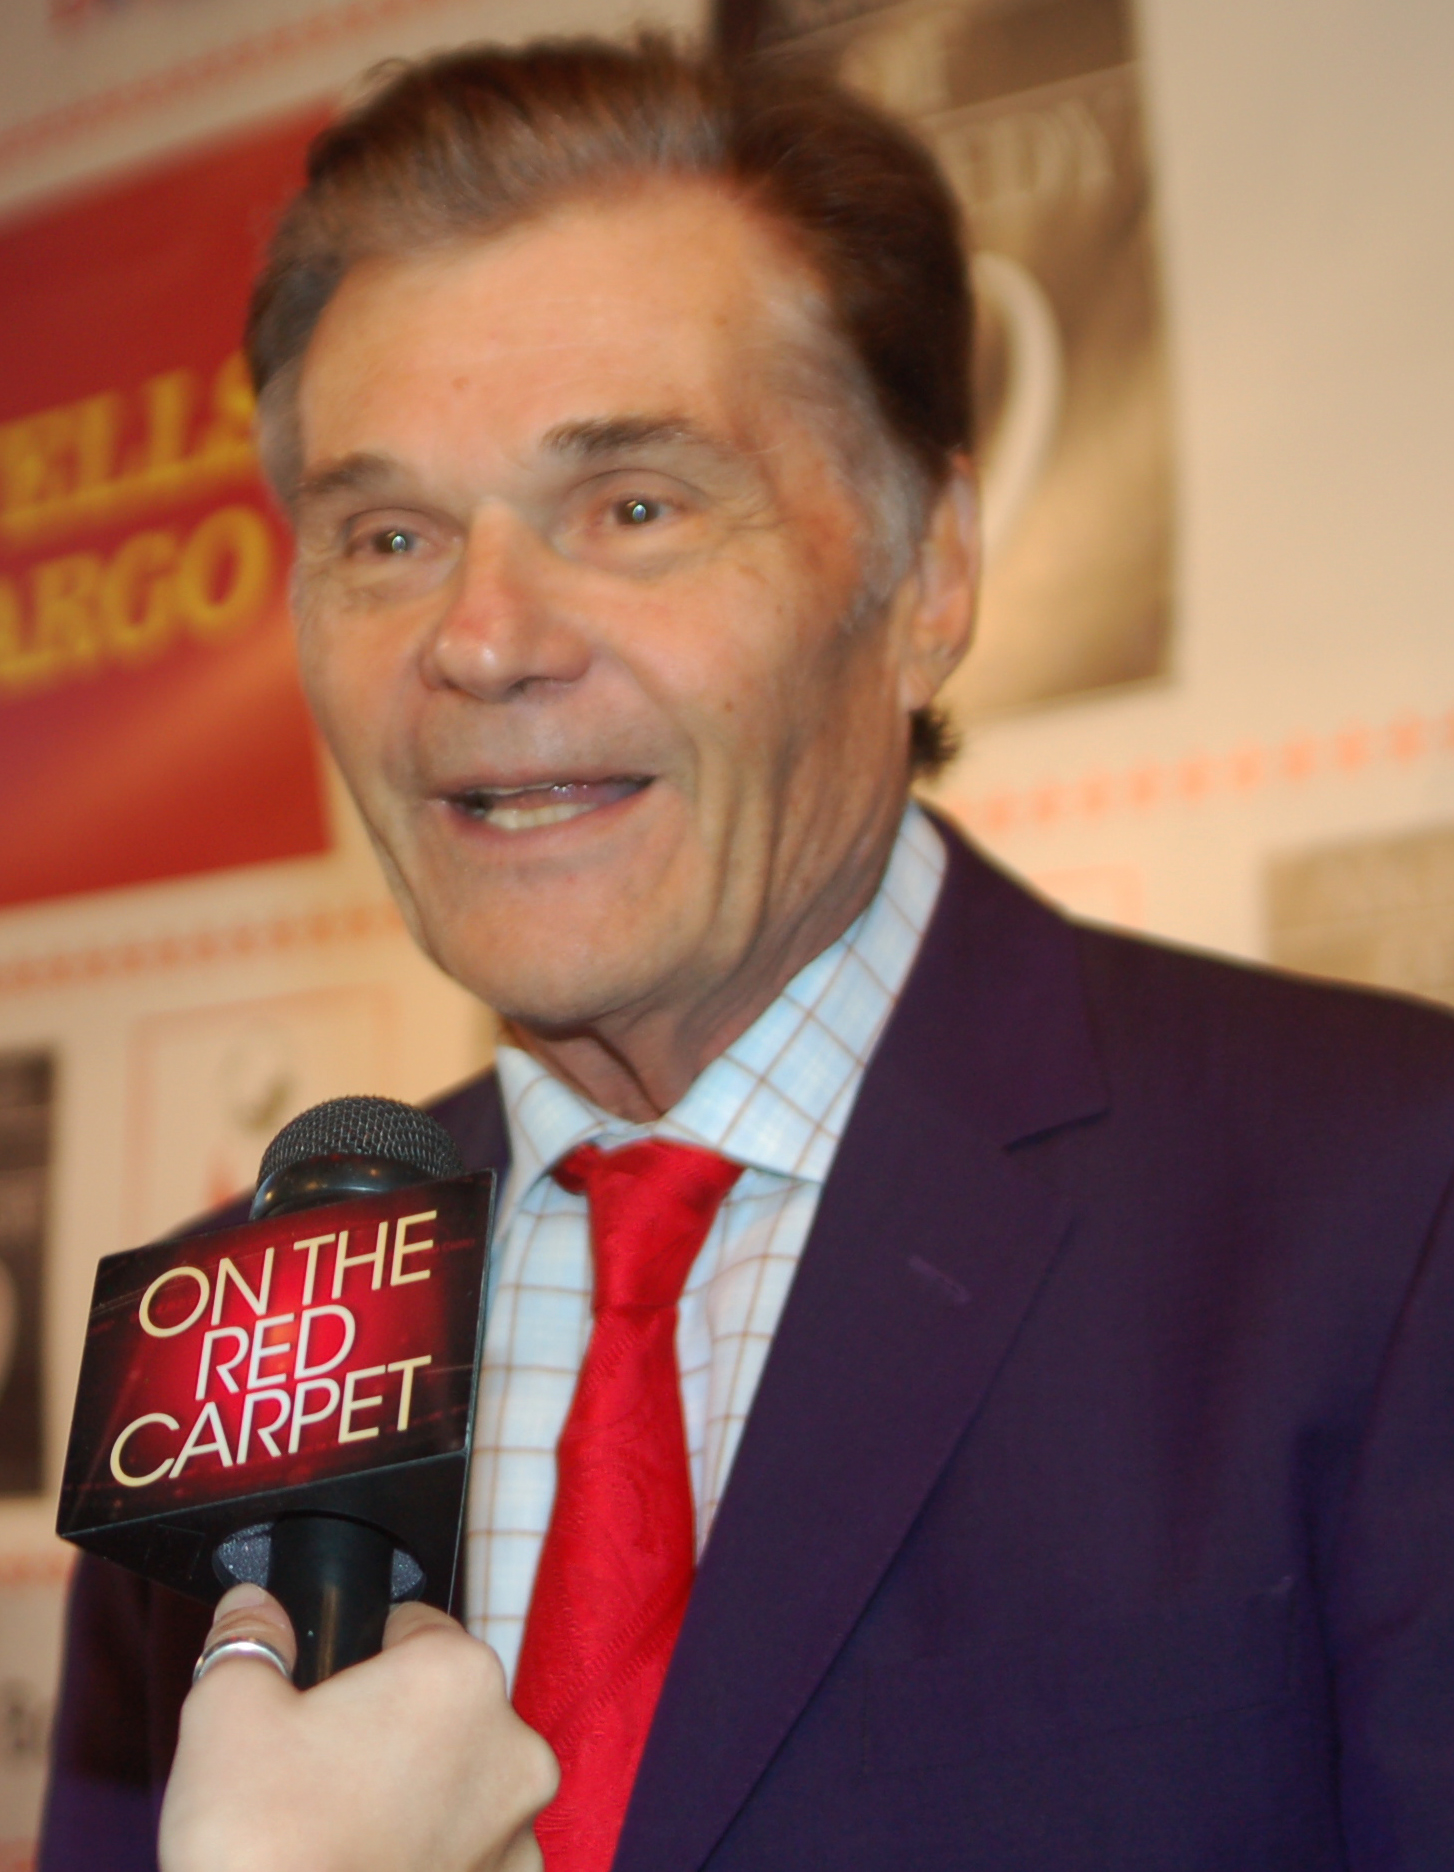 The 79-year old son of father Fred Willard and mother(?) Fred Willard in 2018 photo. Fred Willard earned a  million dollar salary - leaving the net worth at 10 million in 2018